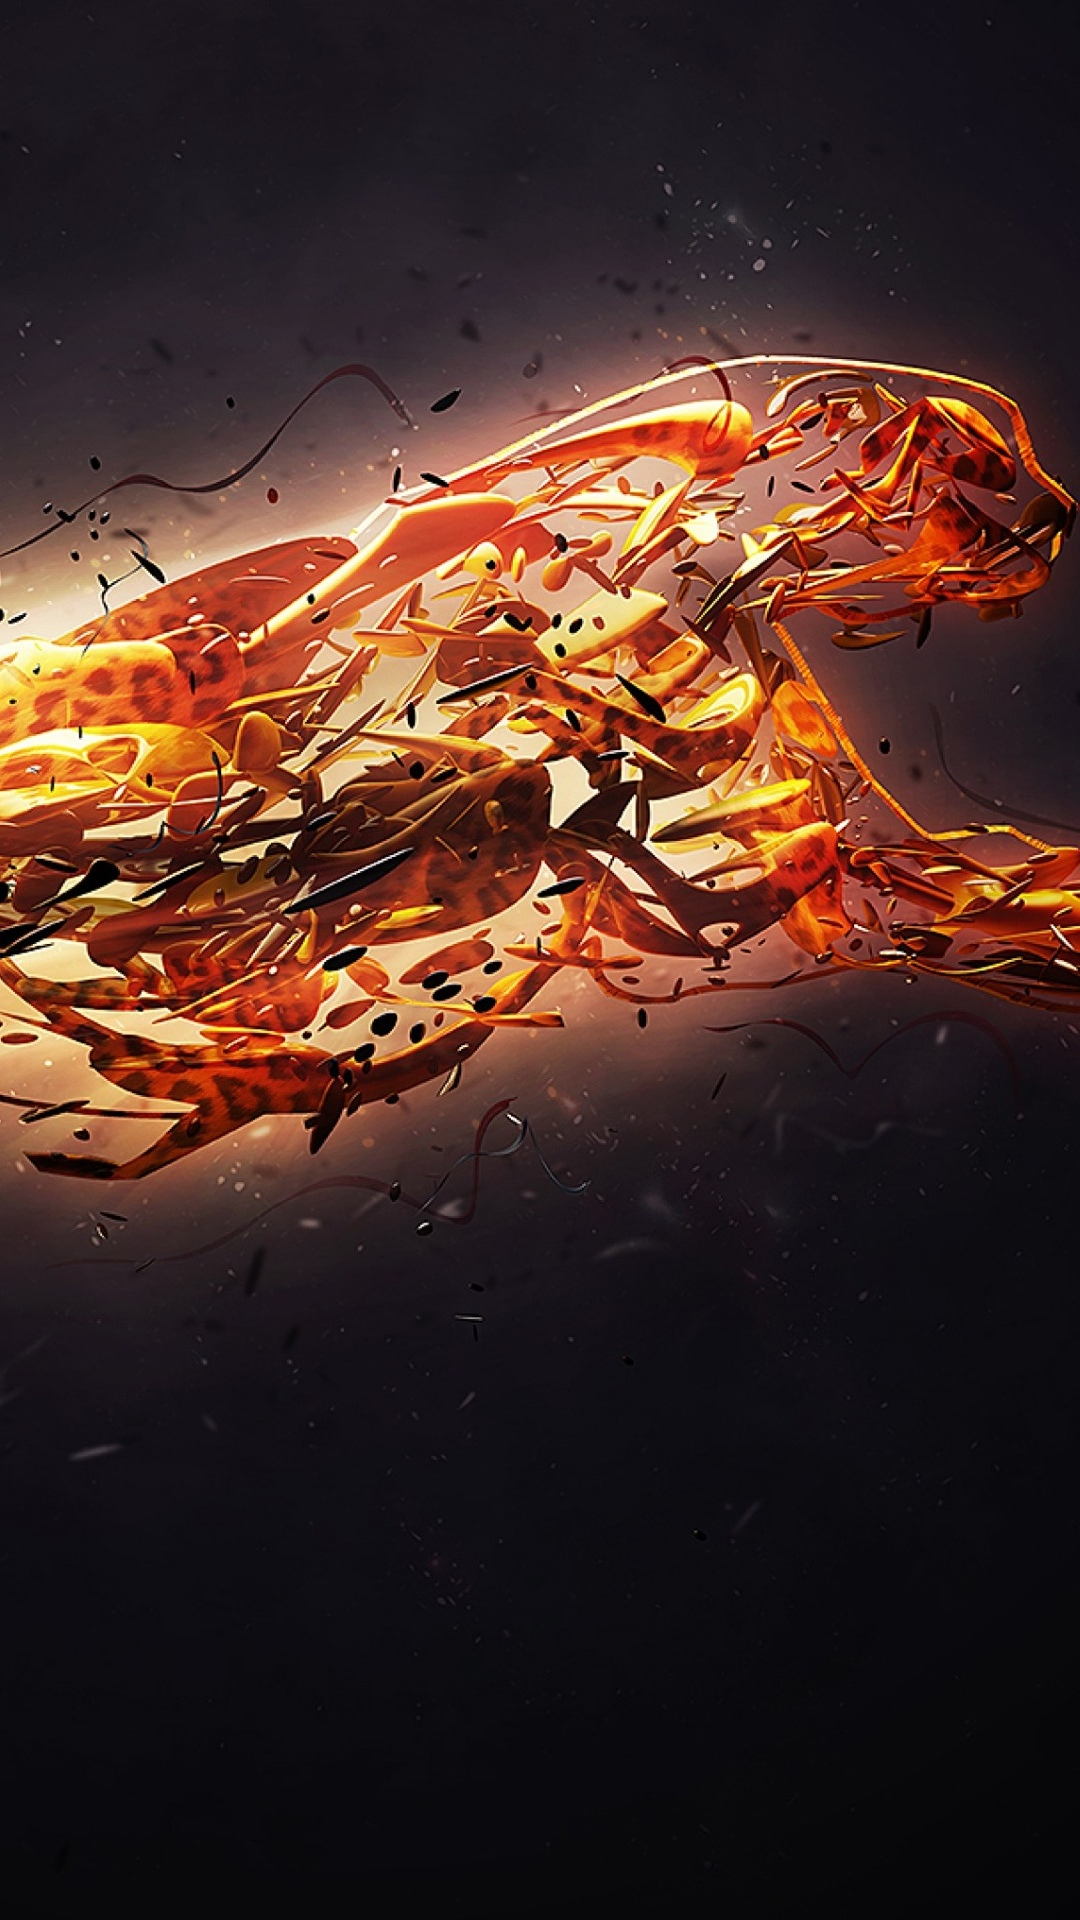 Wild fire cat HTC hd wallpaper